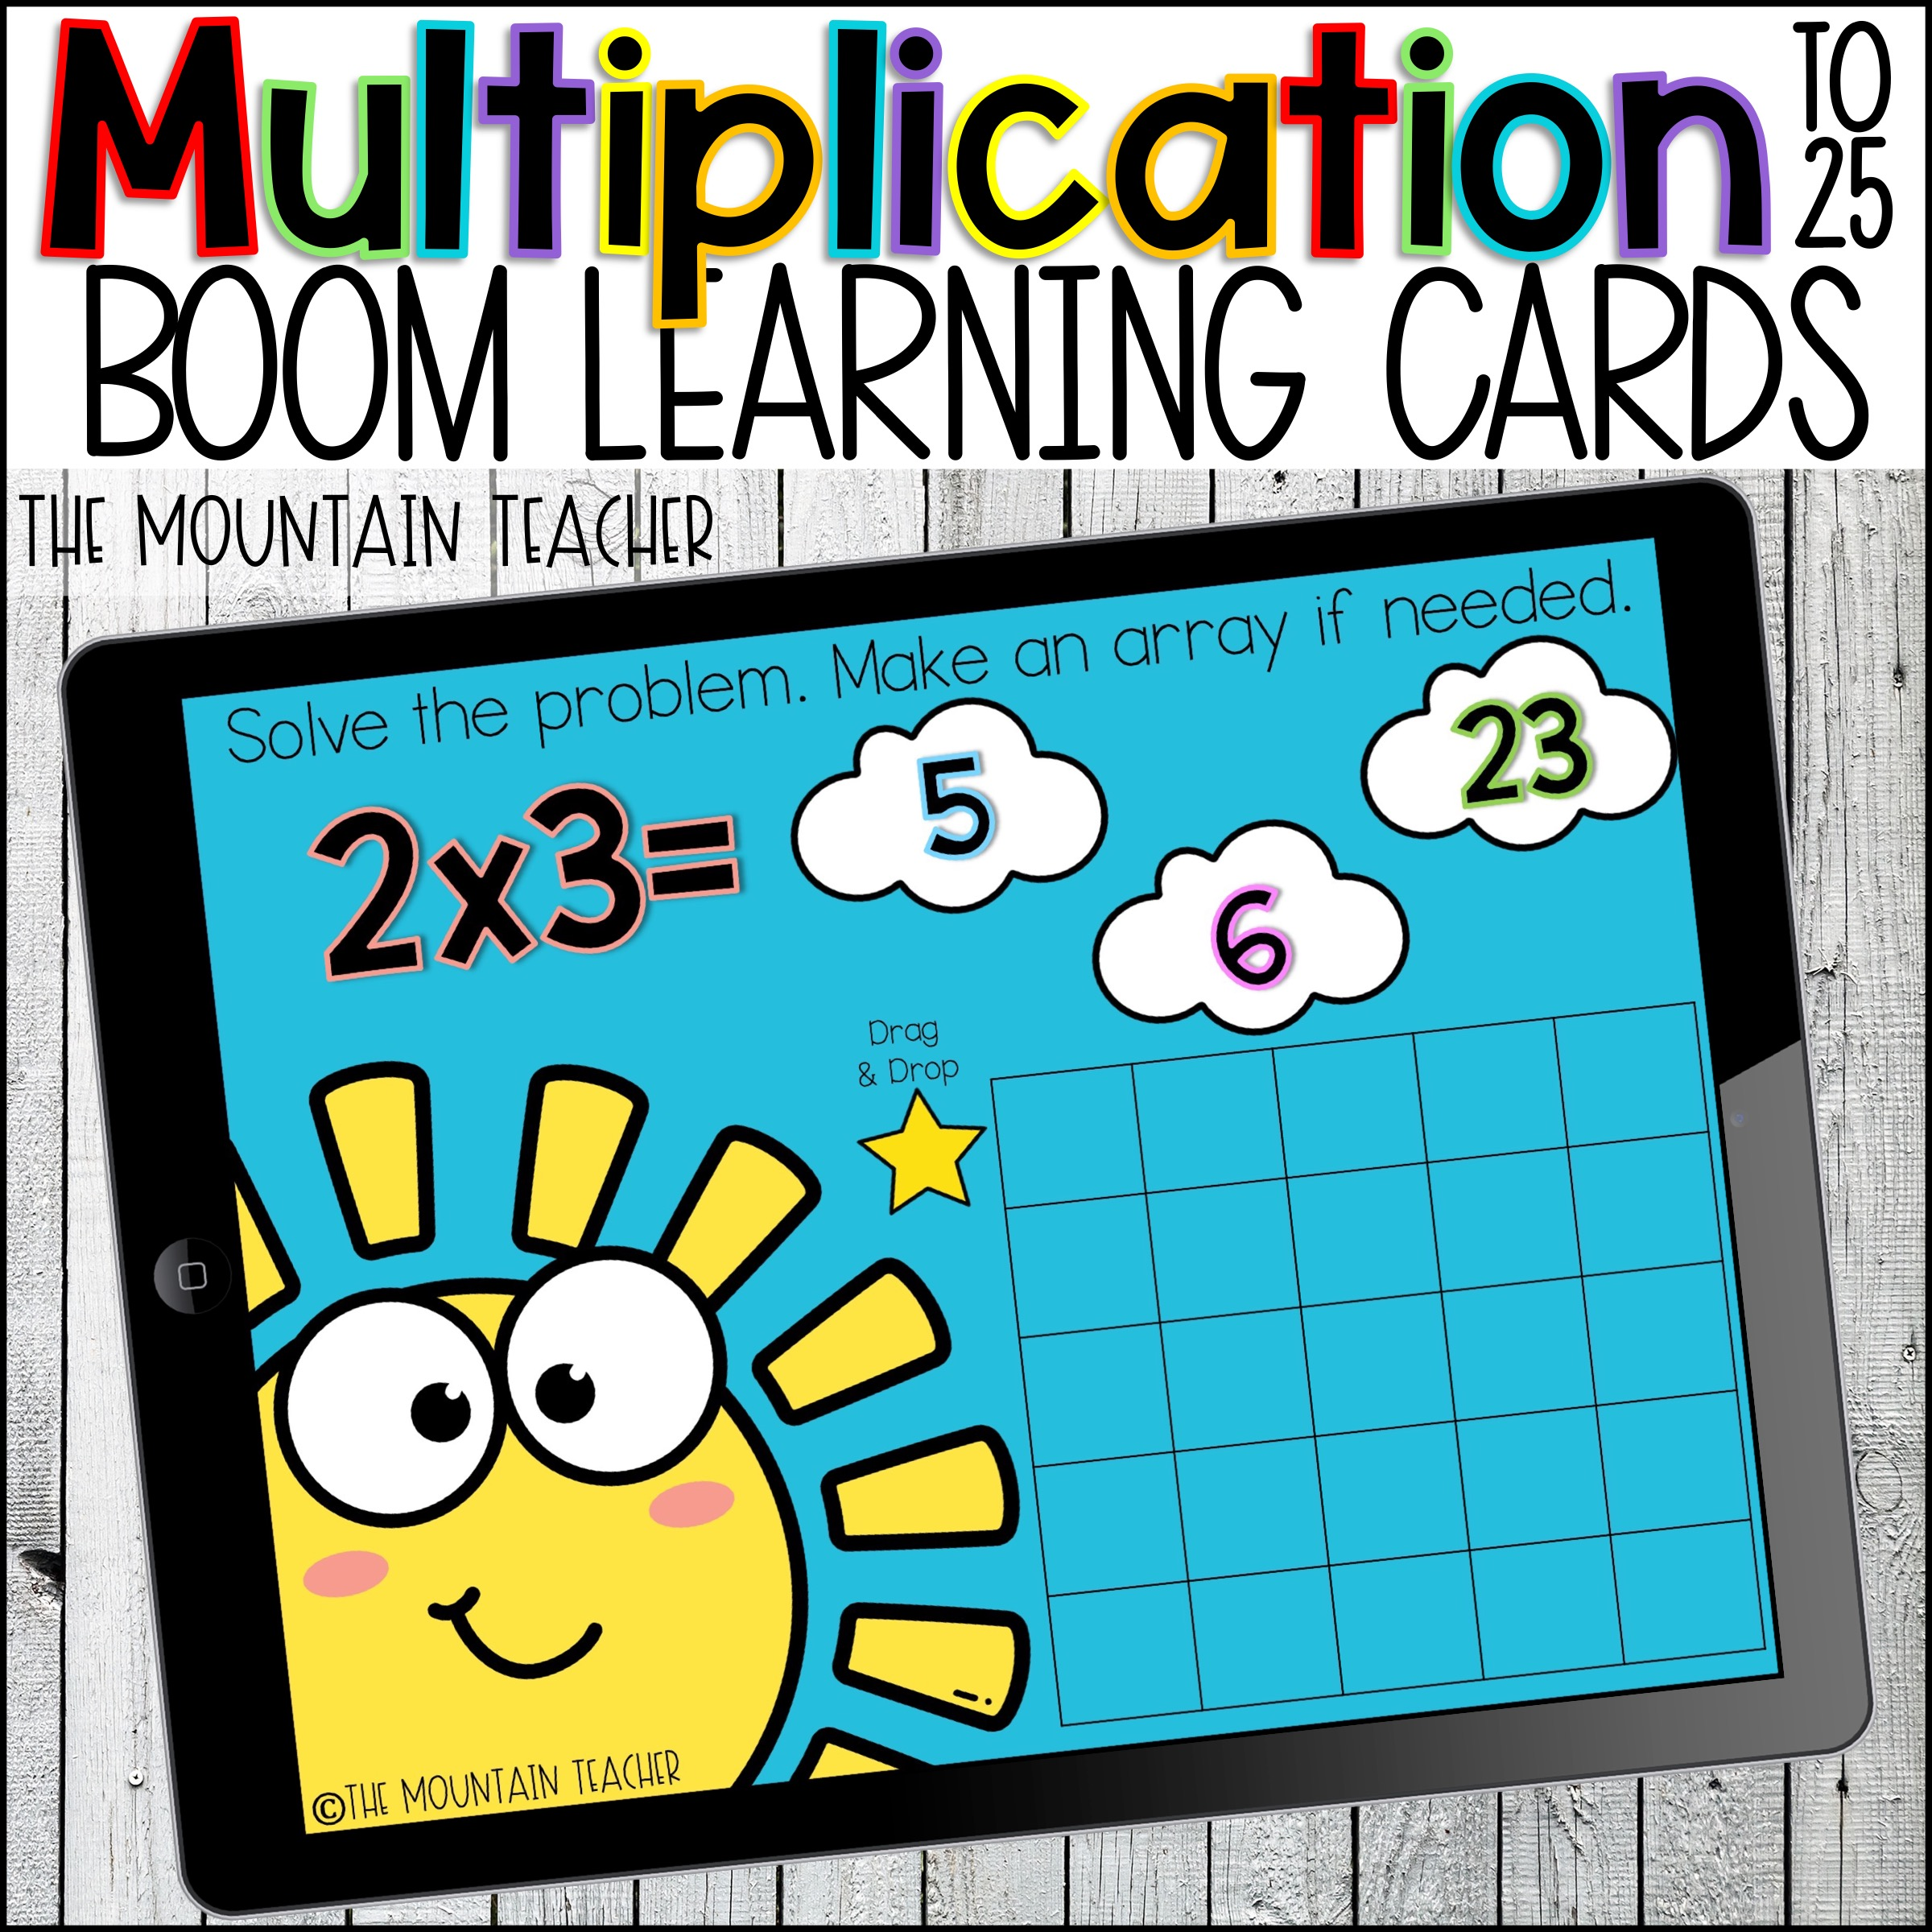 Multiplication and Arrays to 25 Boom Learning Cards by The Mountain Teacher